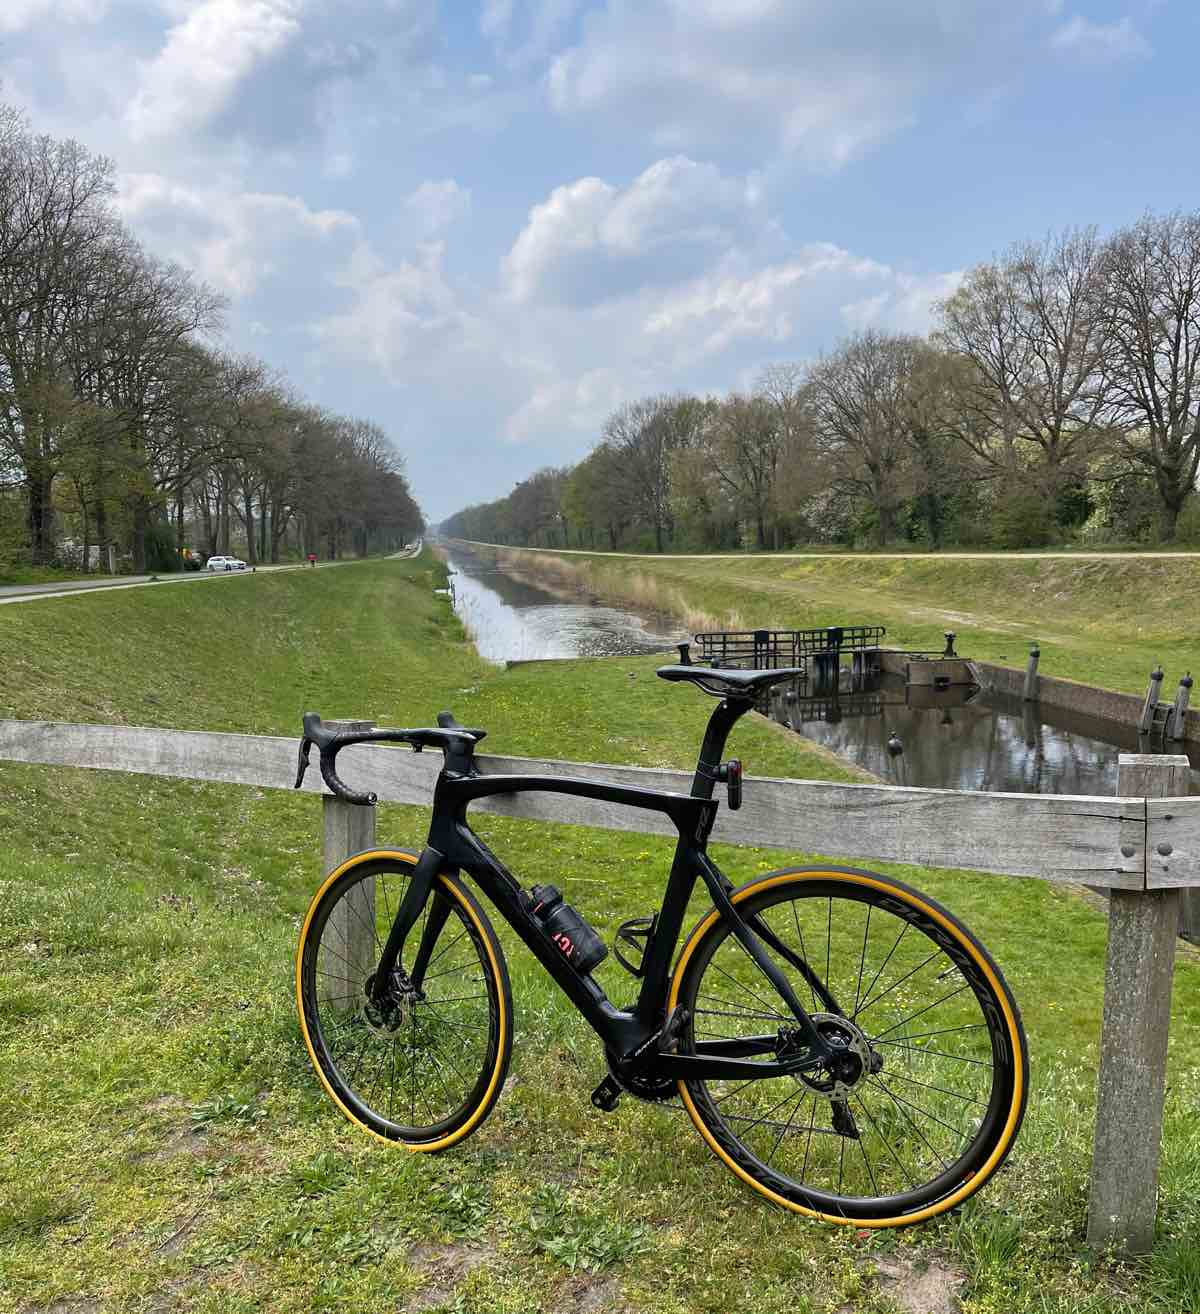 bikerumor pic of the day a road bicycle leans against a wooden fence near a cycle path that follows a canal there are trees bordering the sites of the canal.